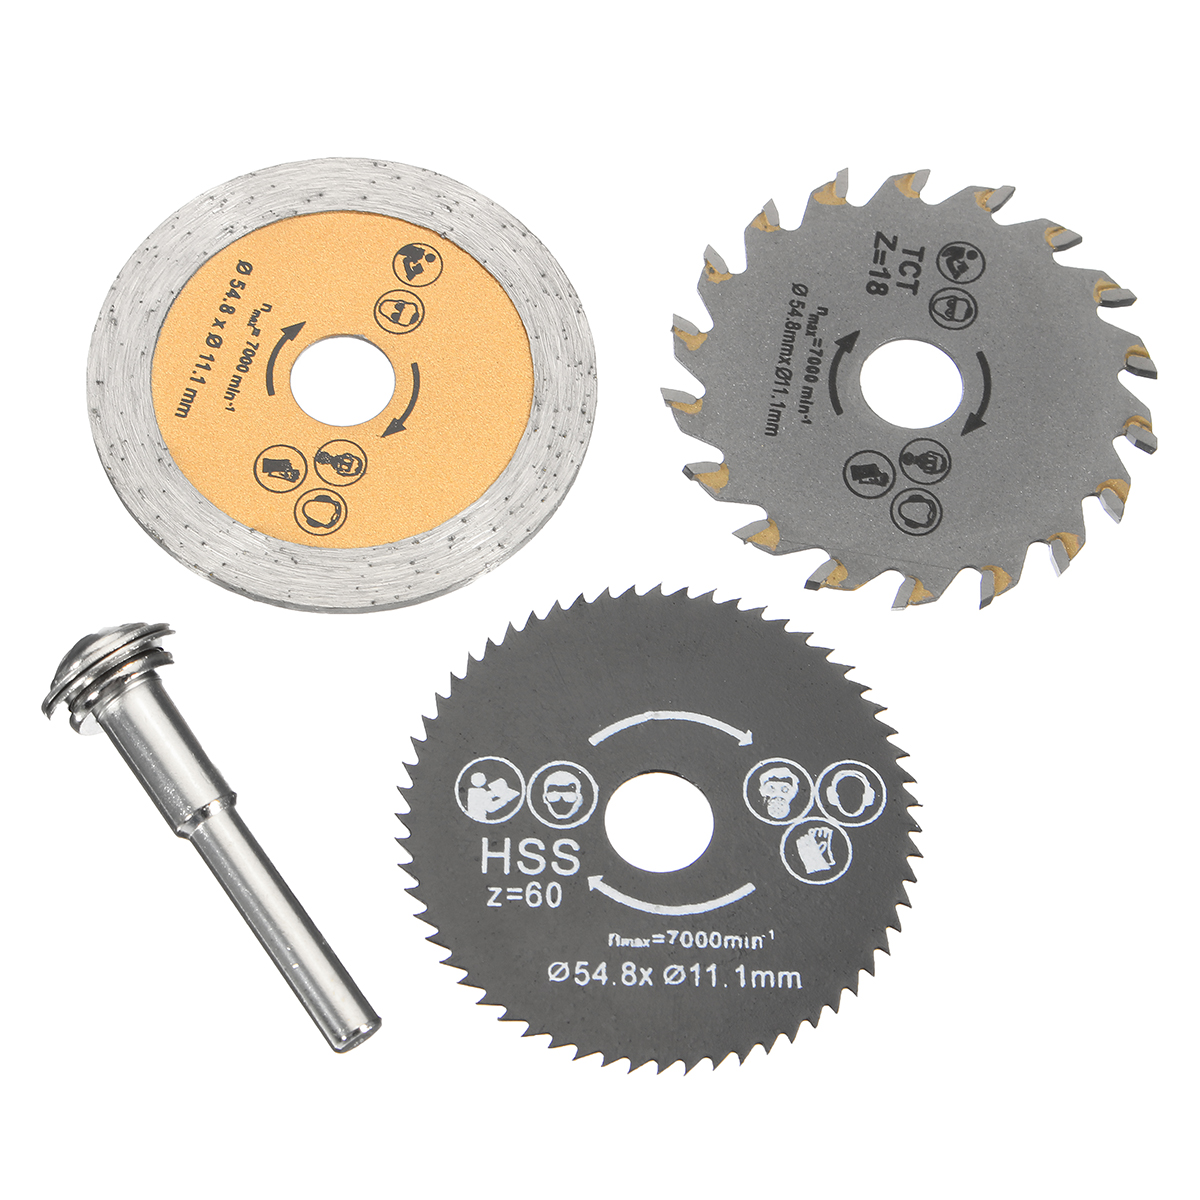 3Pcs Circular Saw Blade Cutting Disc HSS Cutter Disc Shank For Mini Drill Tools Wood Drills Tools Out Diameter 54.8mm